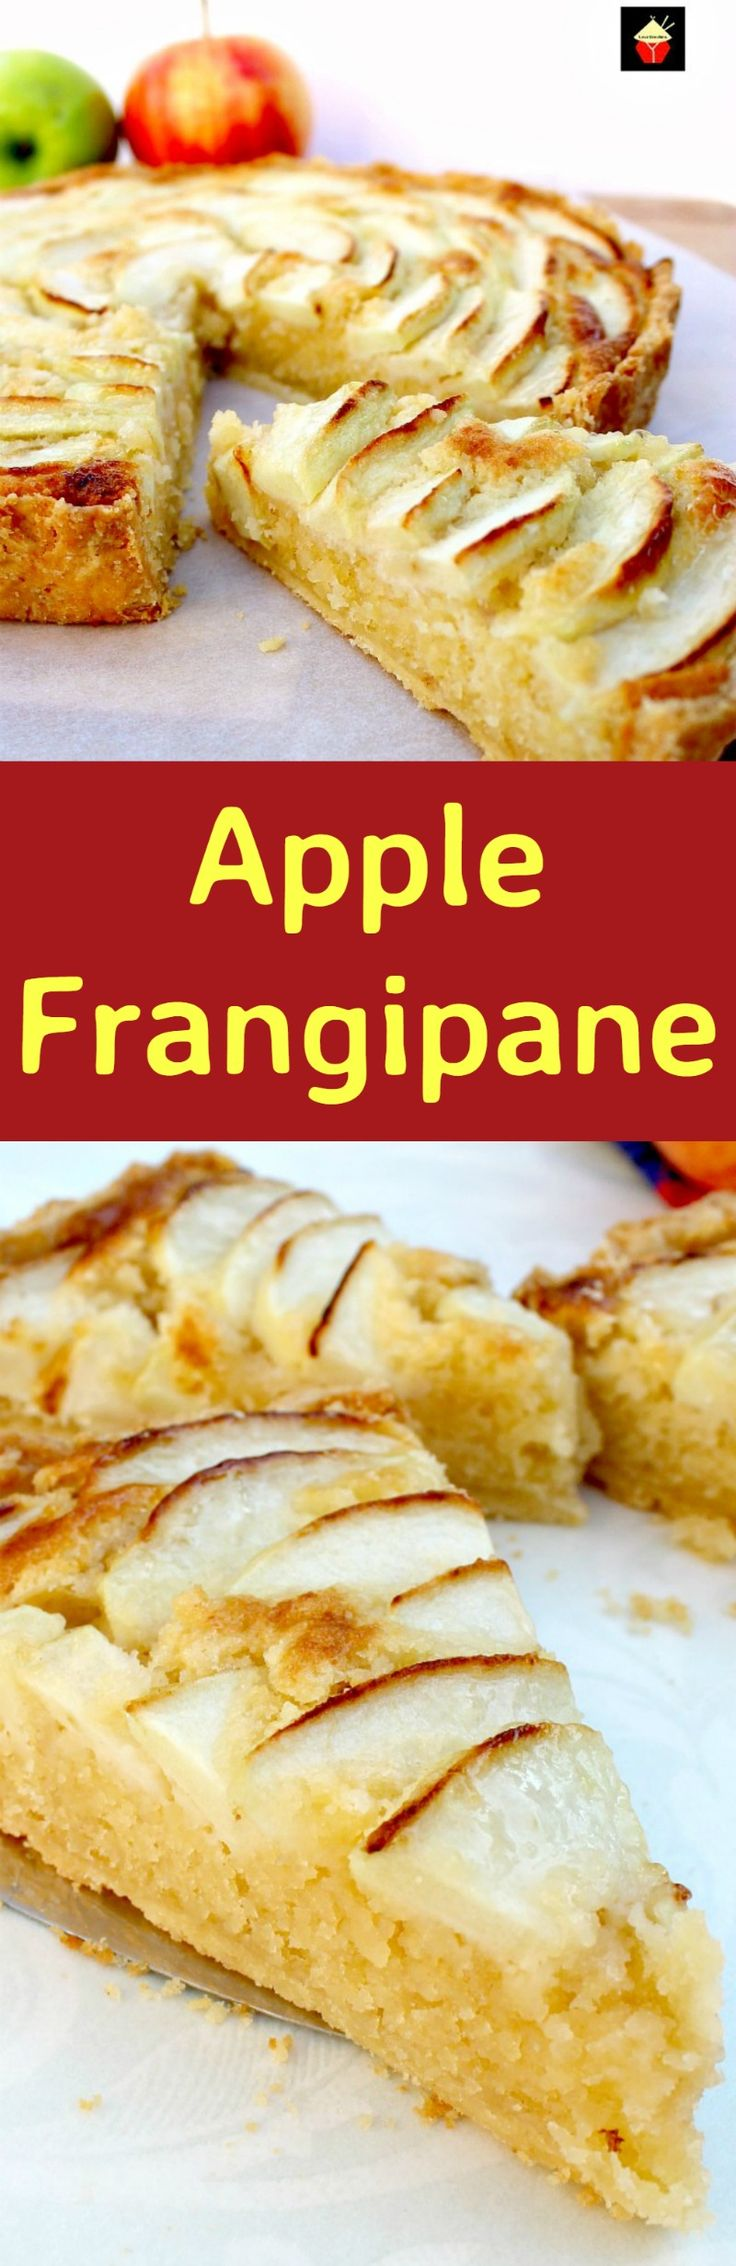 Apple Frangipane. This is a really nice coffee time cake to make. Goes great with a nice cup of tea! Or you can have as a dessert, warm or cold with a squirt of whipped cream or like me, a blob of vanilla ice cream! It's really yummy! Delicious! | Lovefoodies.com